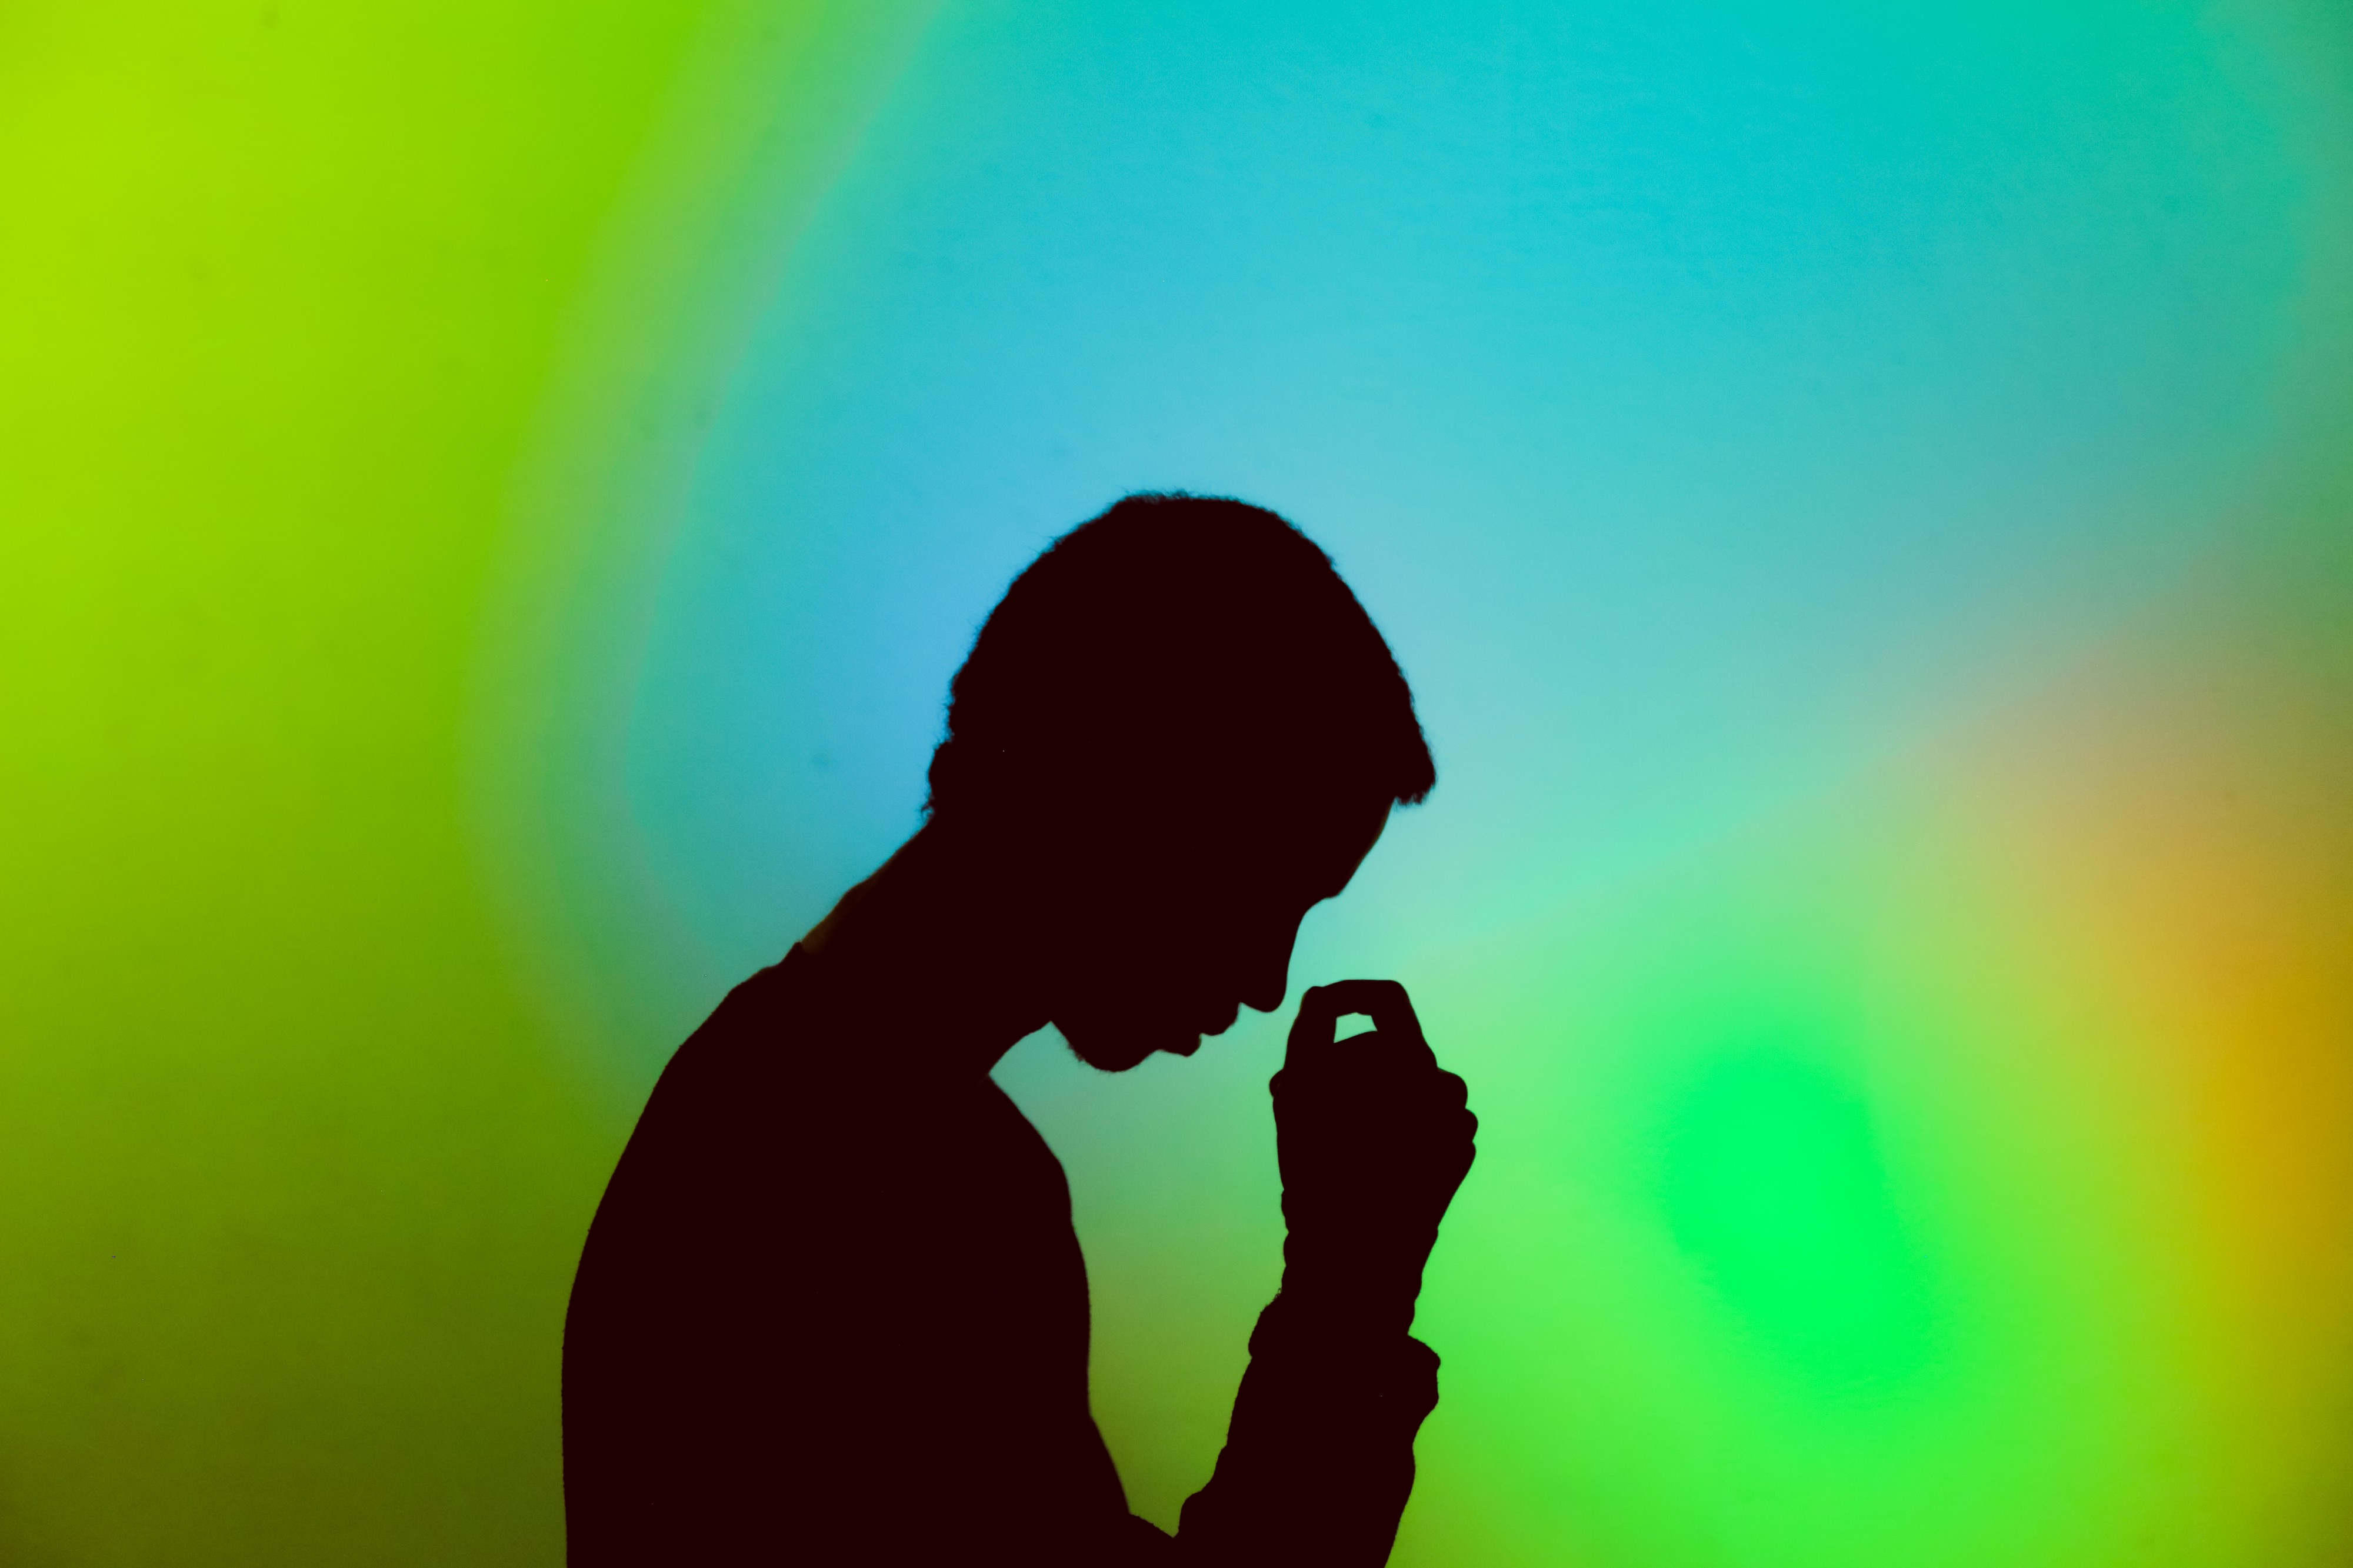 A silhouette of a man looking sad and holding his head down.